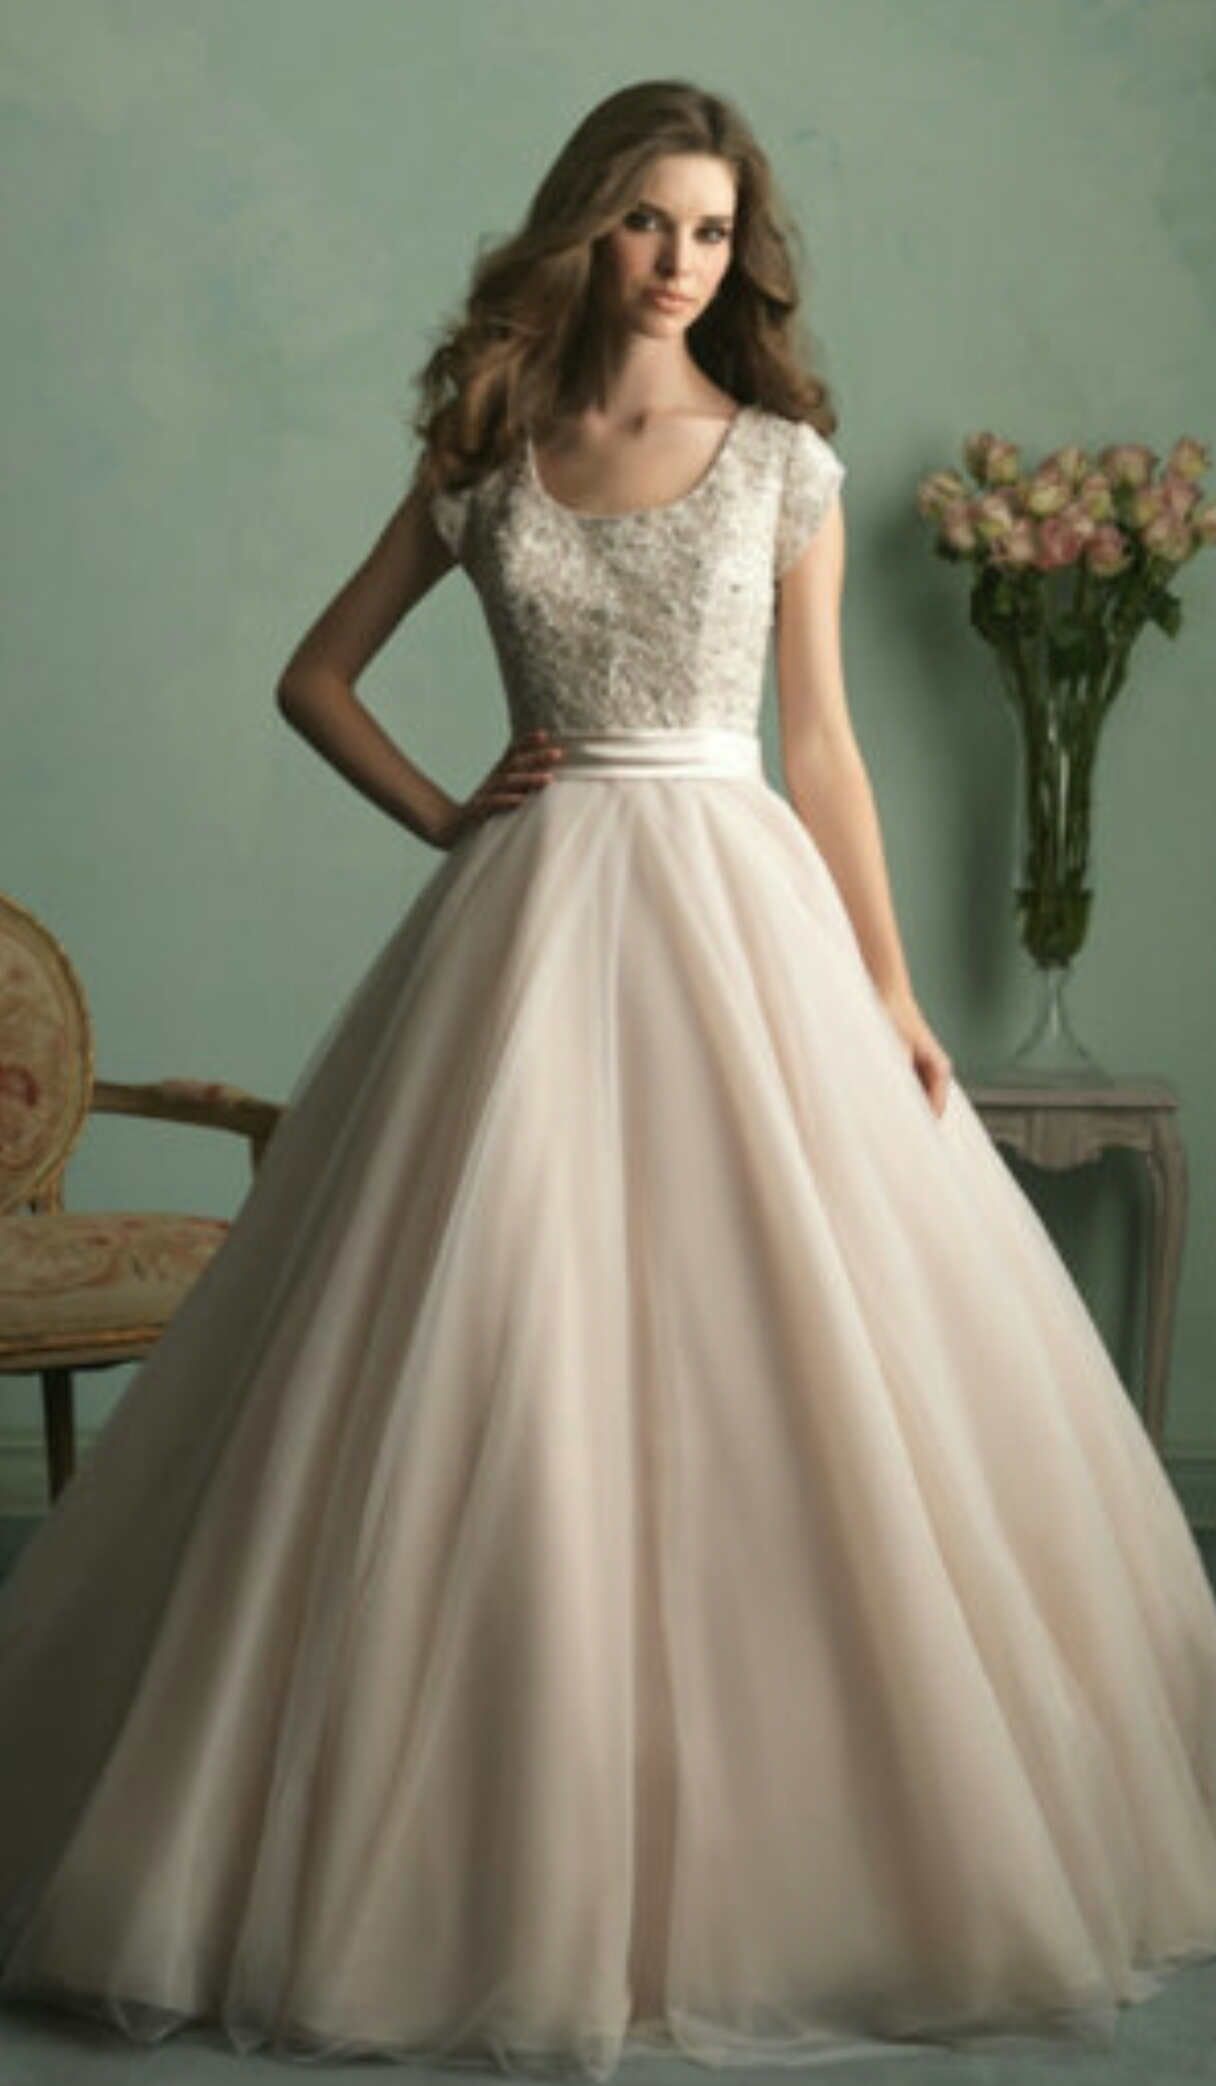 Kendra wedding dress pictures